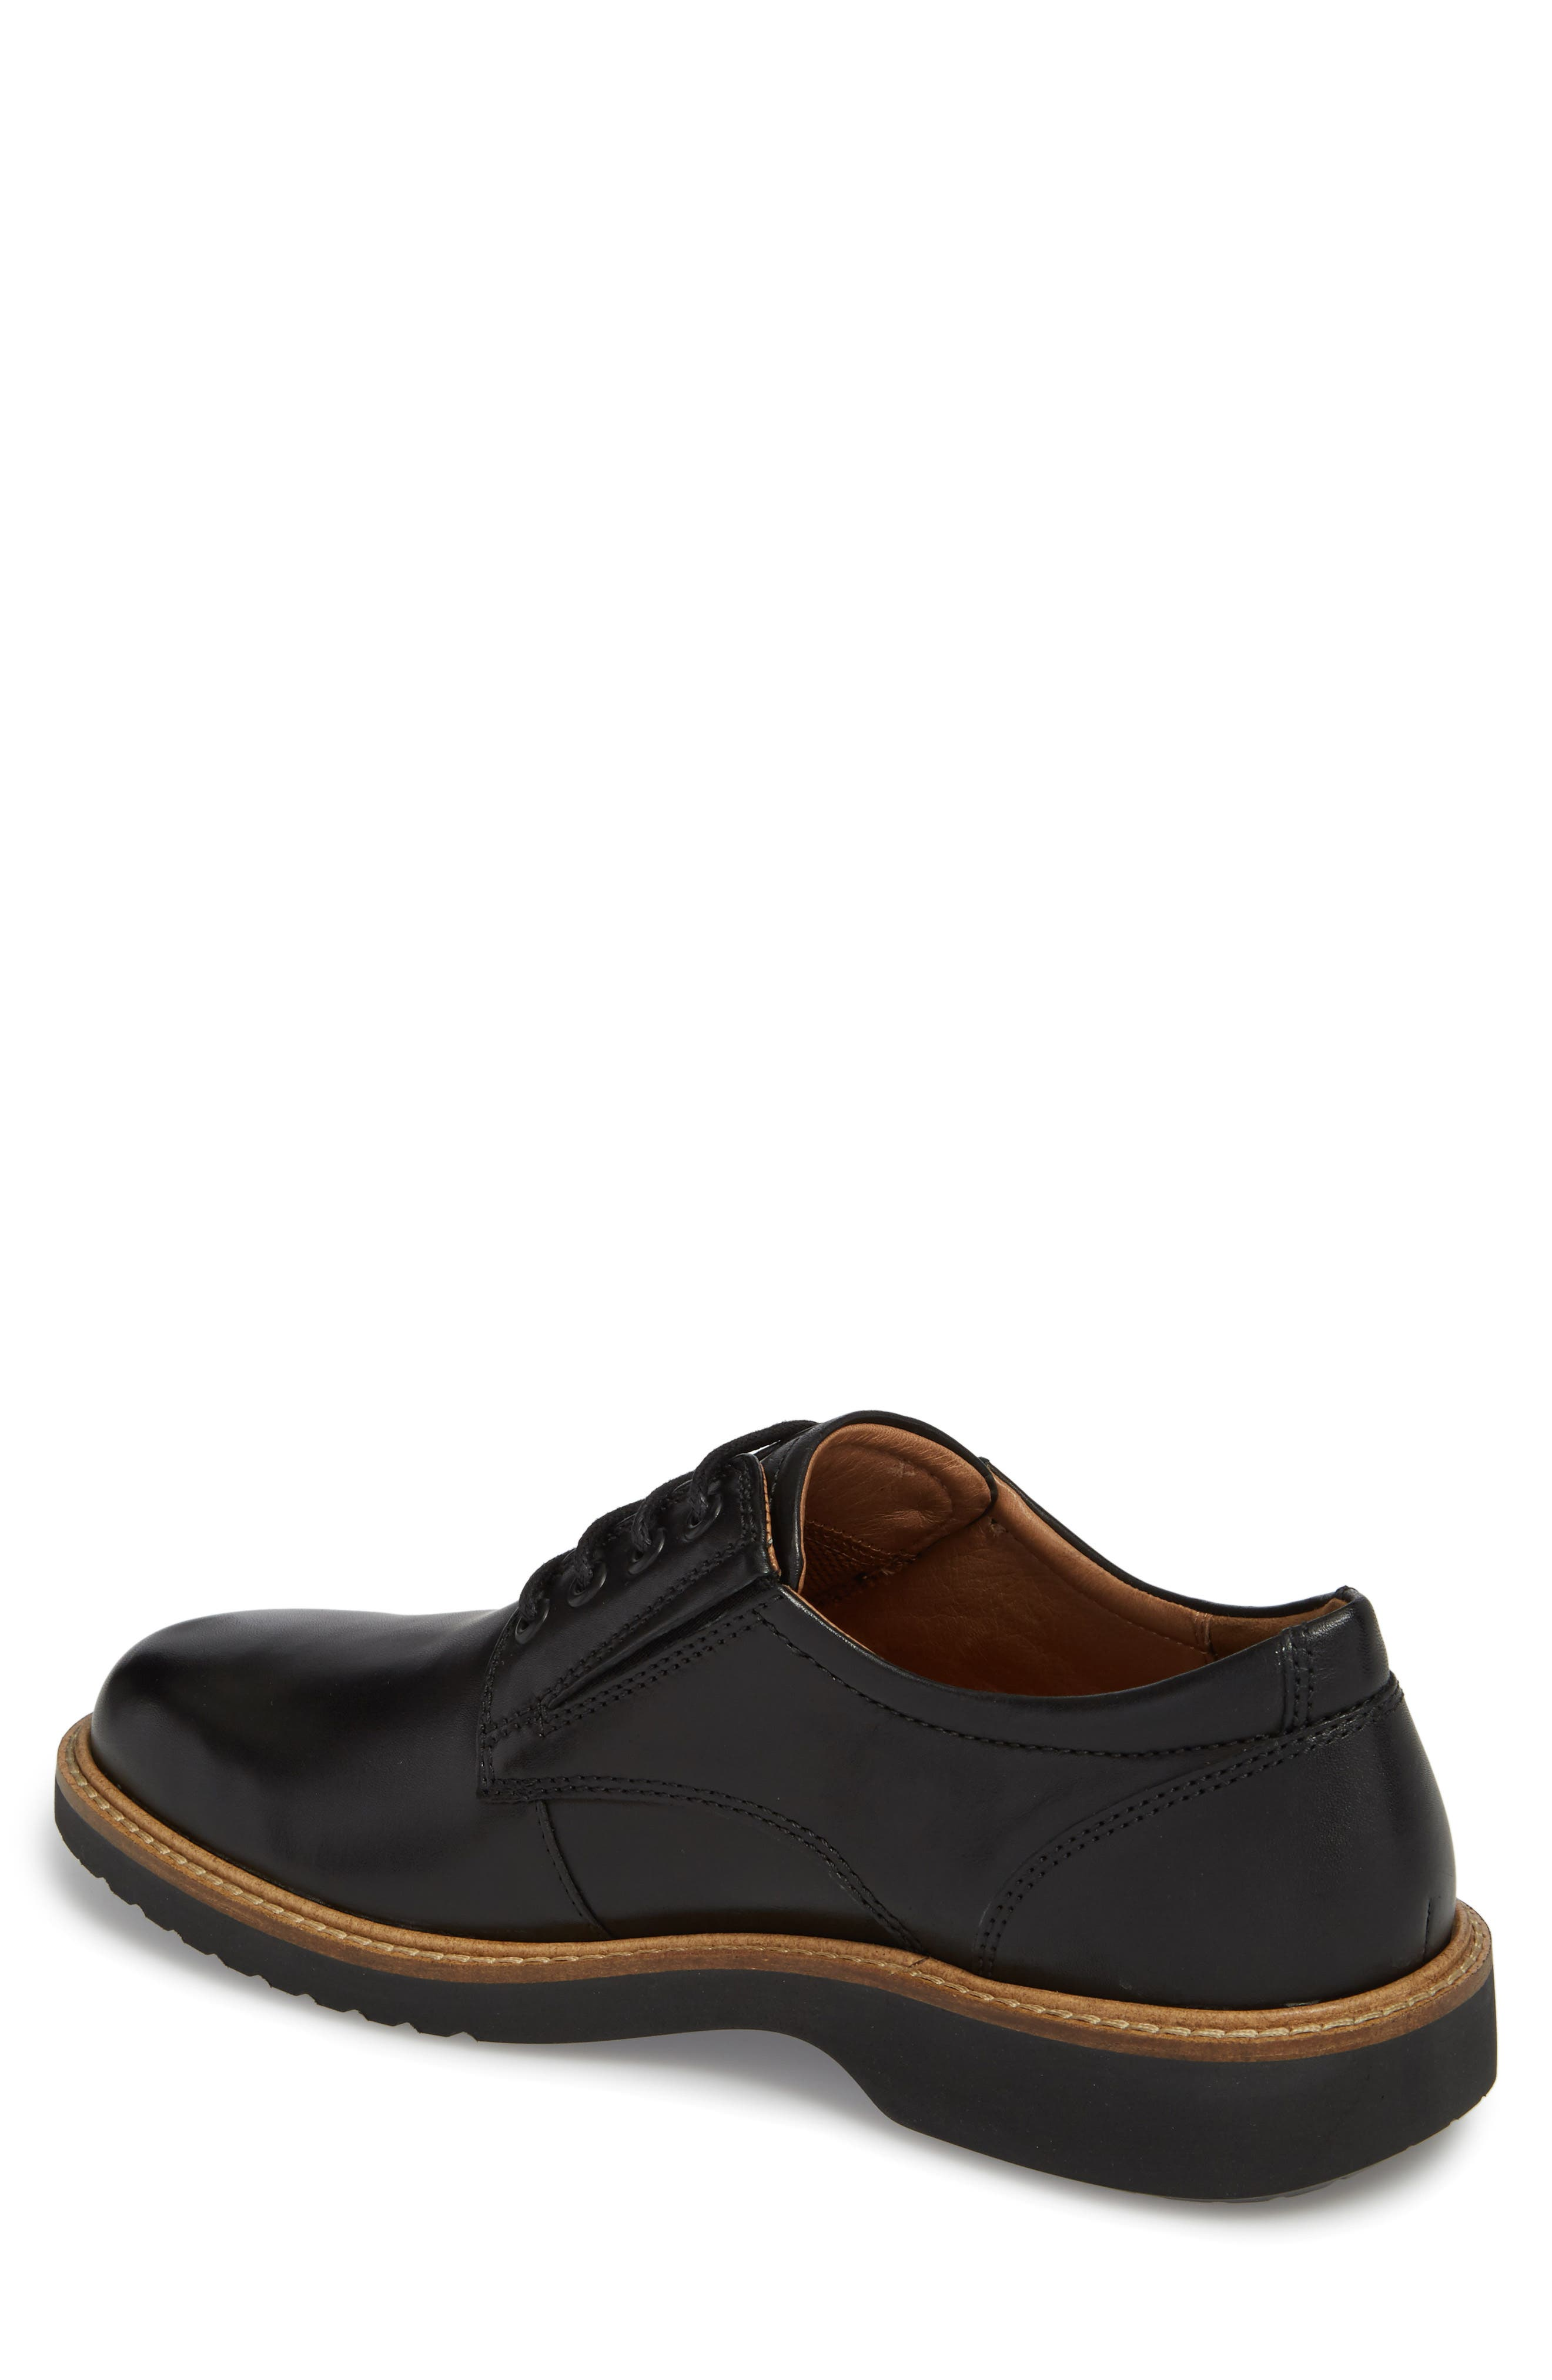 Ian Casual Plain Toe Derby,                             Alternate thumbnail 2, color,                             Black Leather